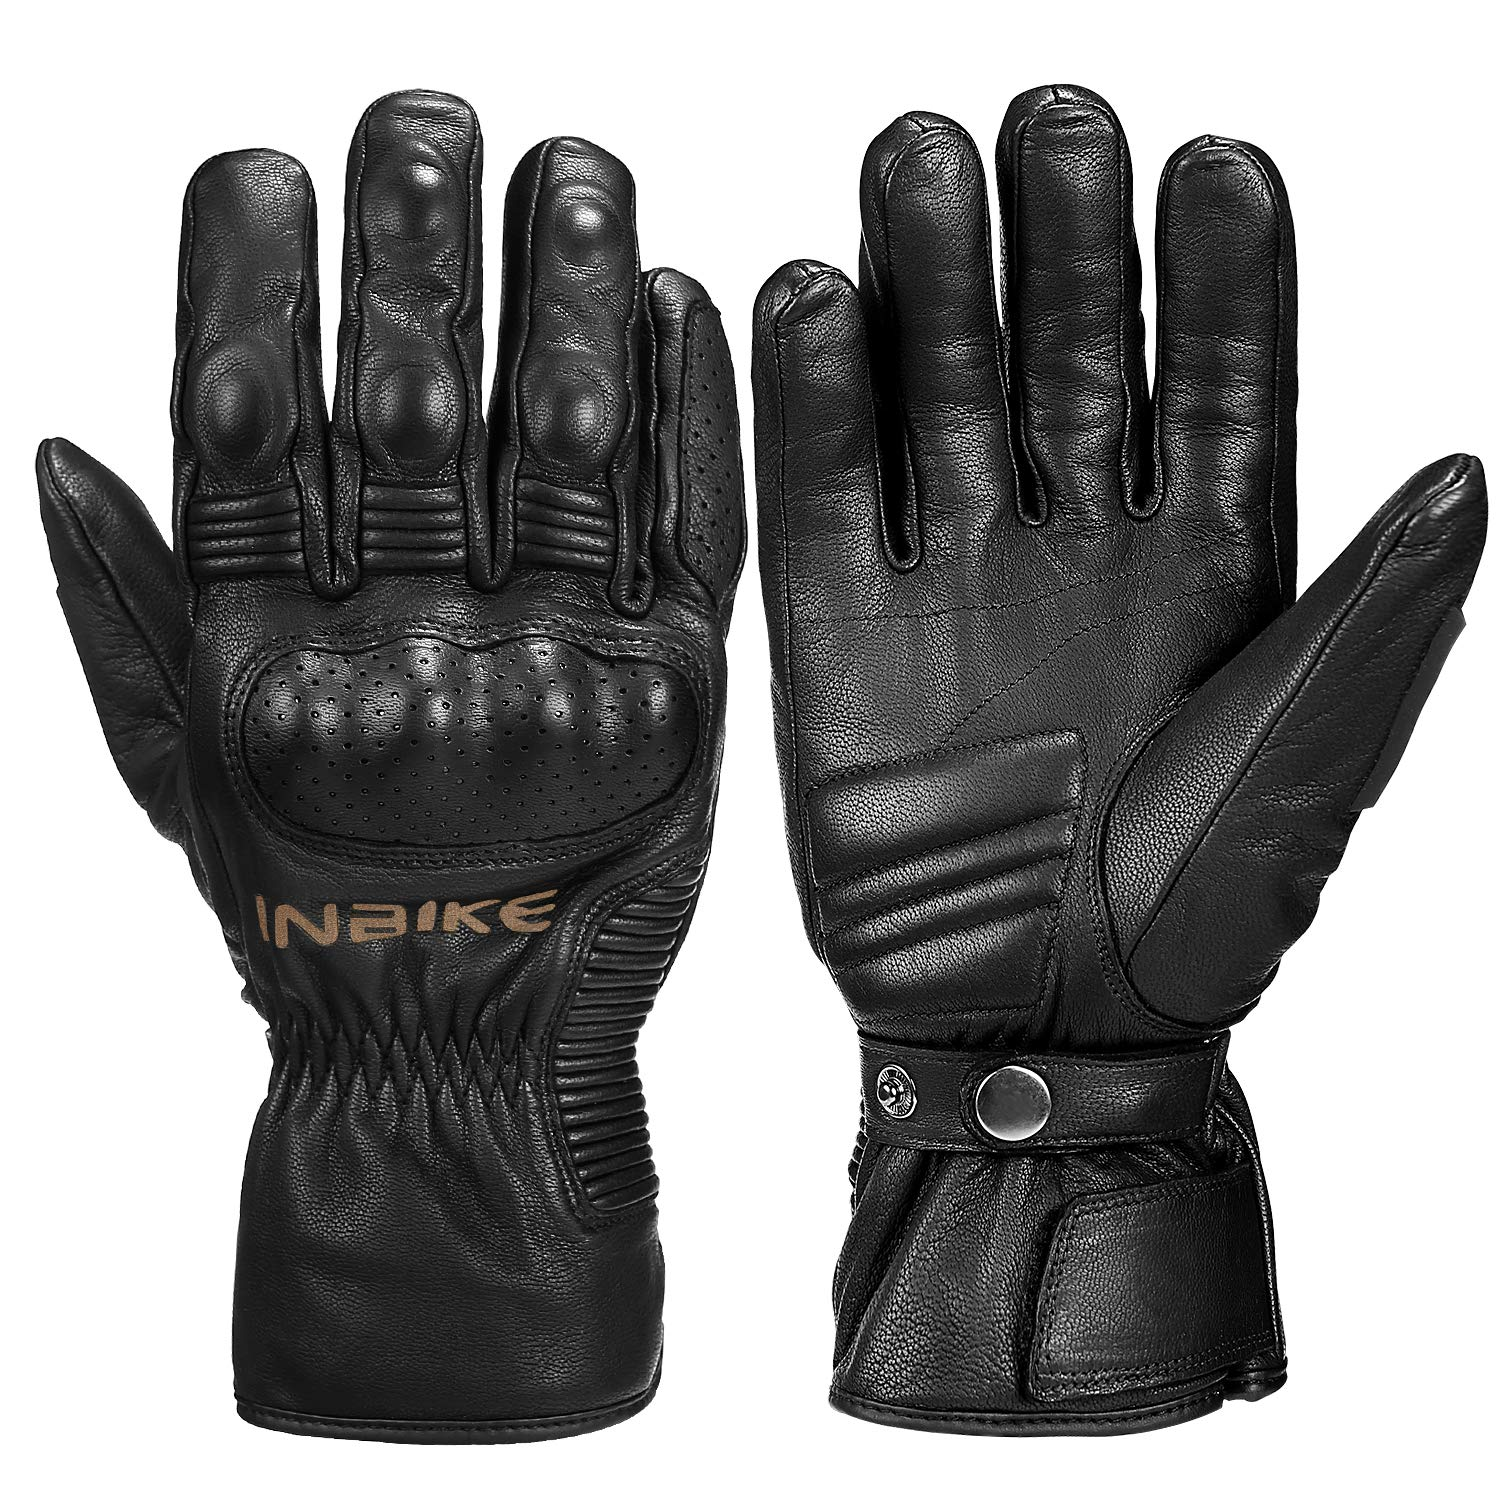 Inbike Winter Gloves